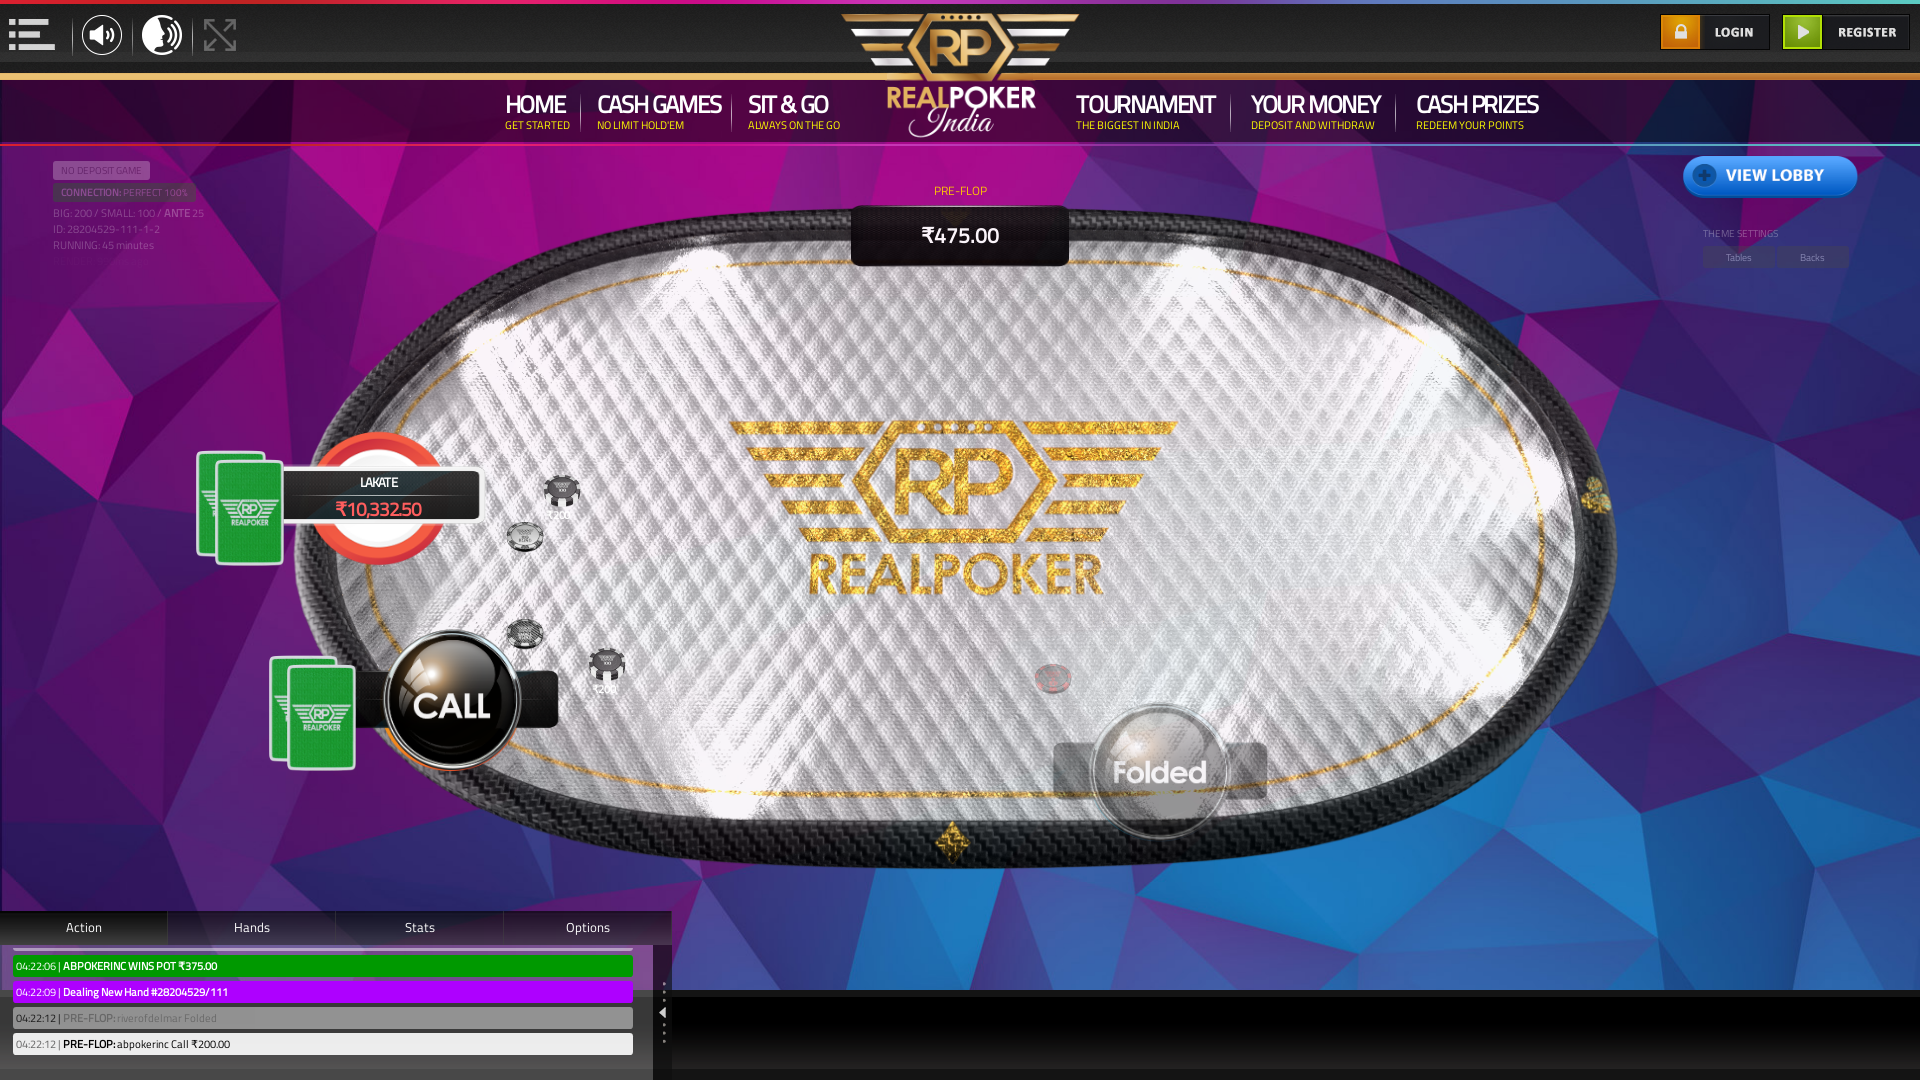 Bicholim Goa Online Poker on the 13th October